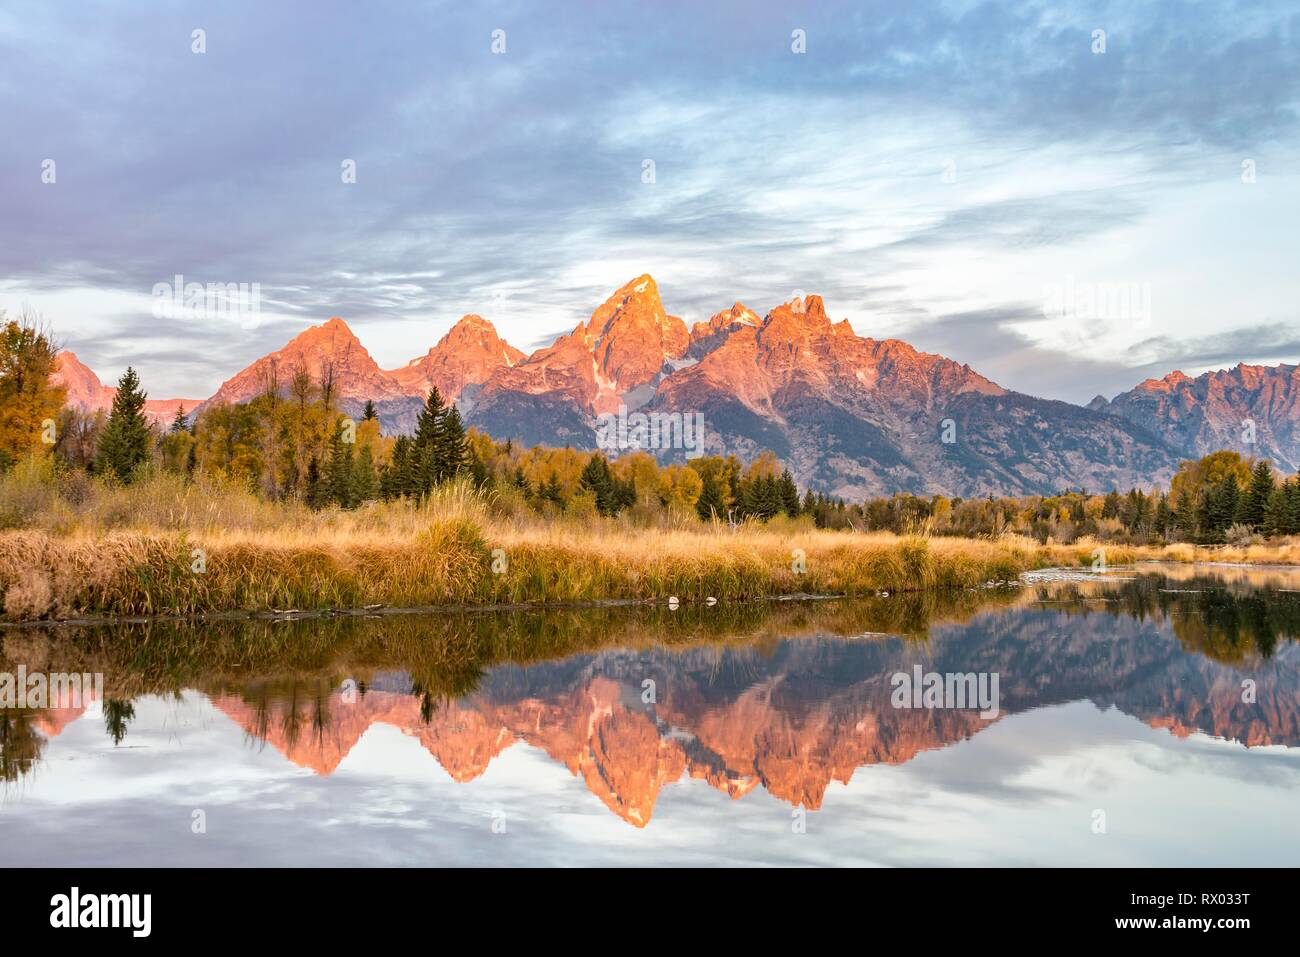 Mountains glow red at sunrise, Grand Teton Range mountain range reflected in the river, autumn landscape on Snake River - Stock Image